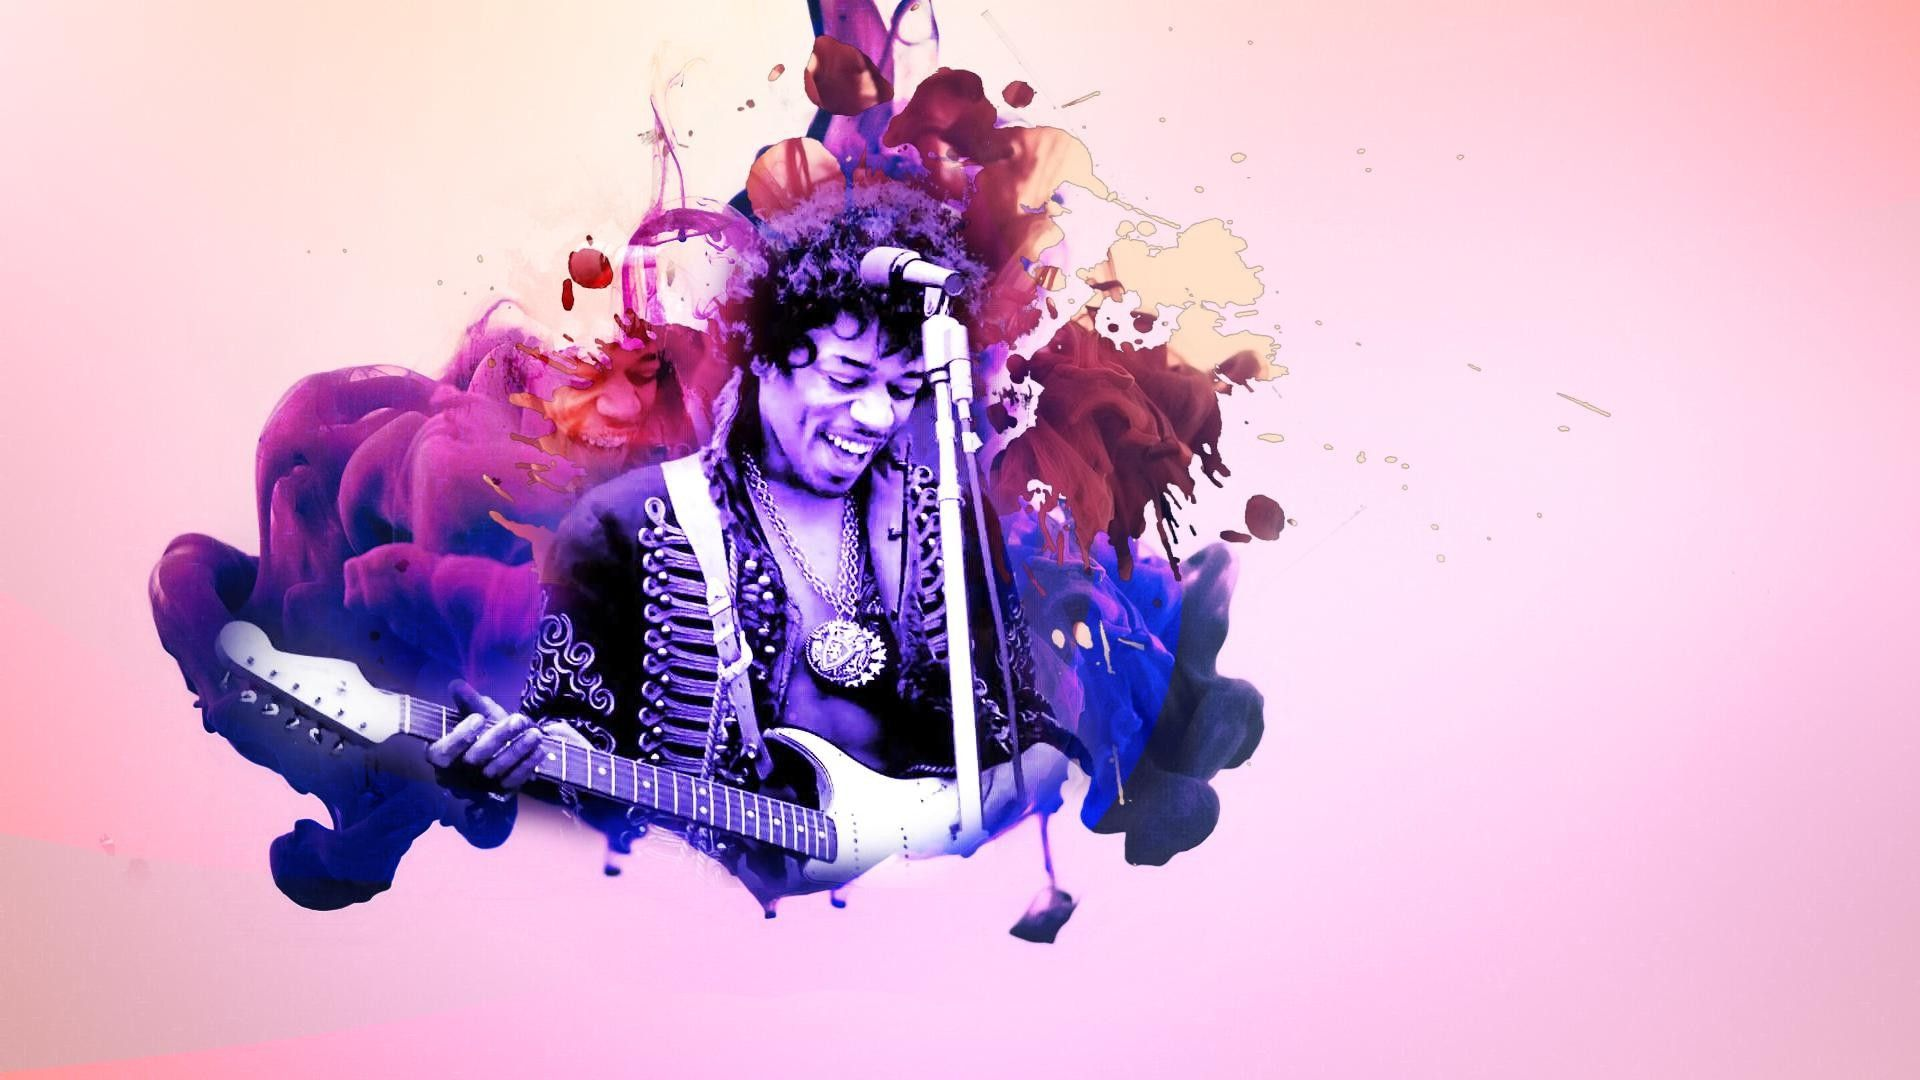 Hd Jimi Hendrix Wallpapers Wallpapers Backgrounds Images Art Photos Dzhimmi Hendriks